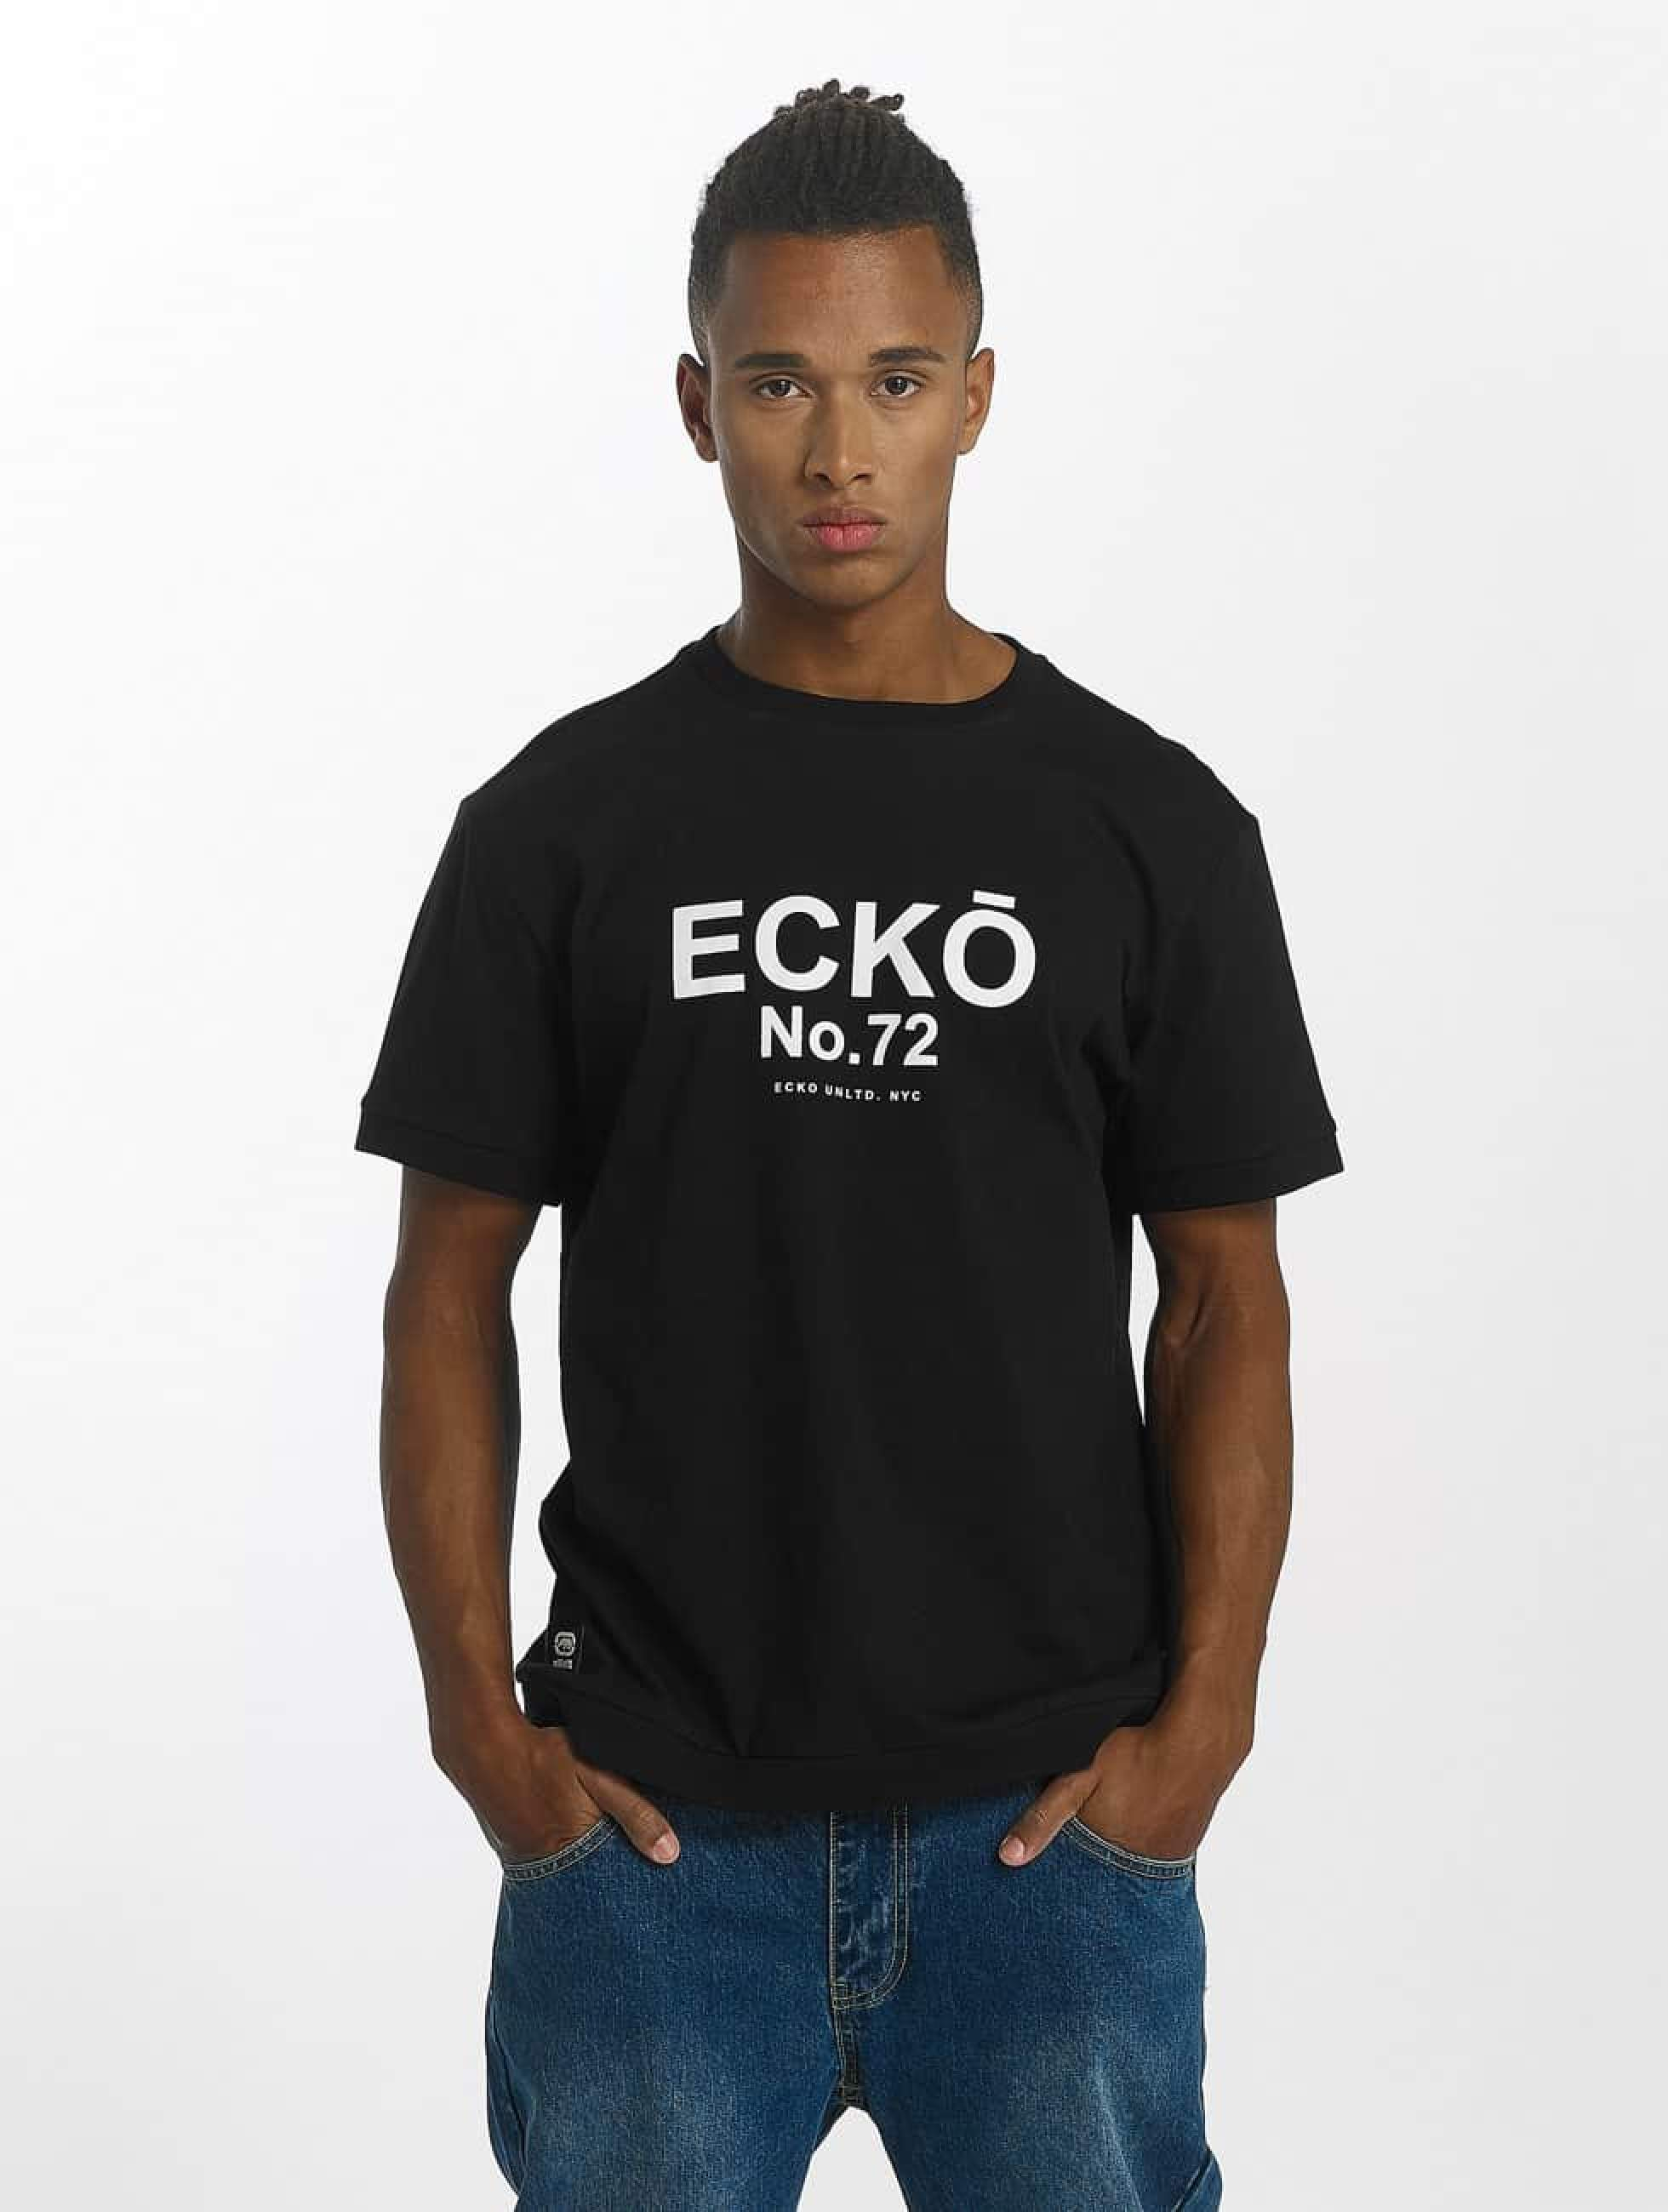 Ecko Unltd. / T-Shirt SkeletonCoast in black XL